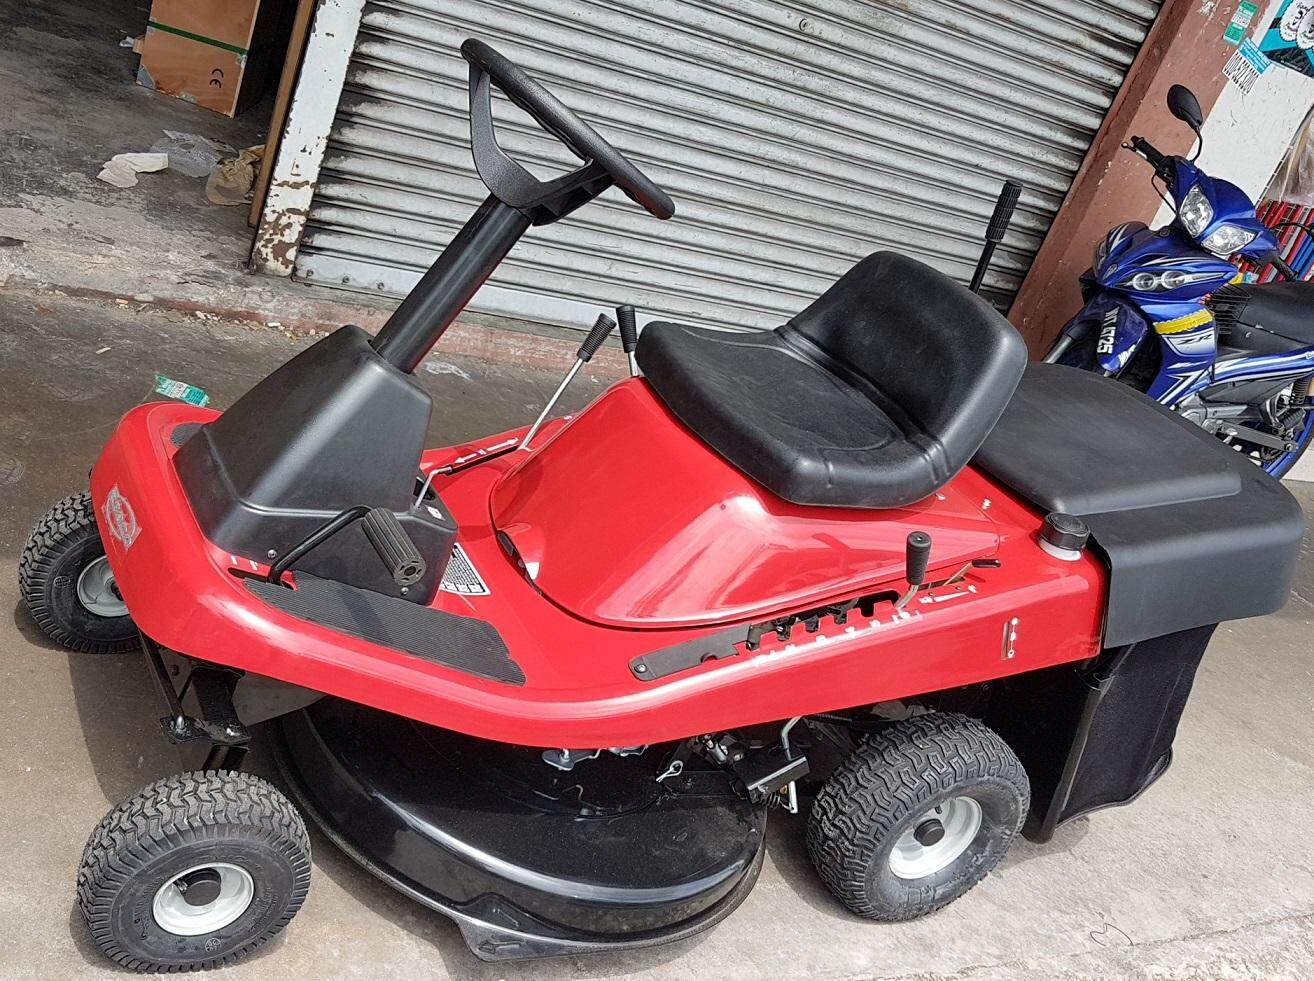 grass cut cutter cutting lawn mower ride on riding car tractor tool roll roller rolling sit truck drive driving control high low power engine slicer drill grinder floor wheel blade plate handle handling press pressure slice petrol motor tank collector